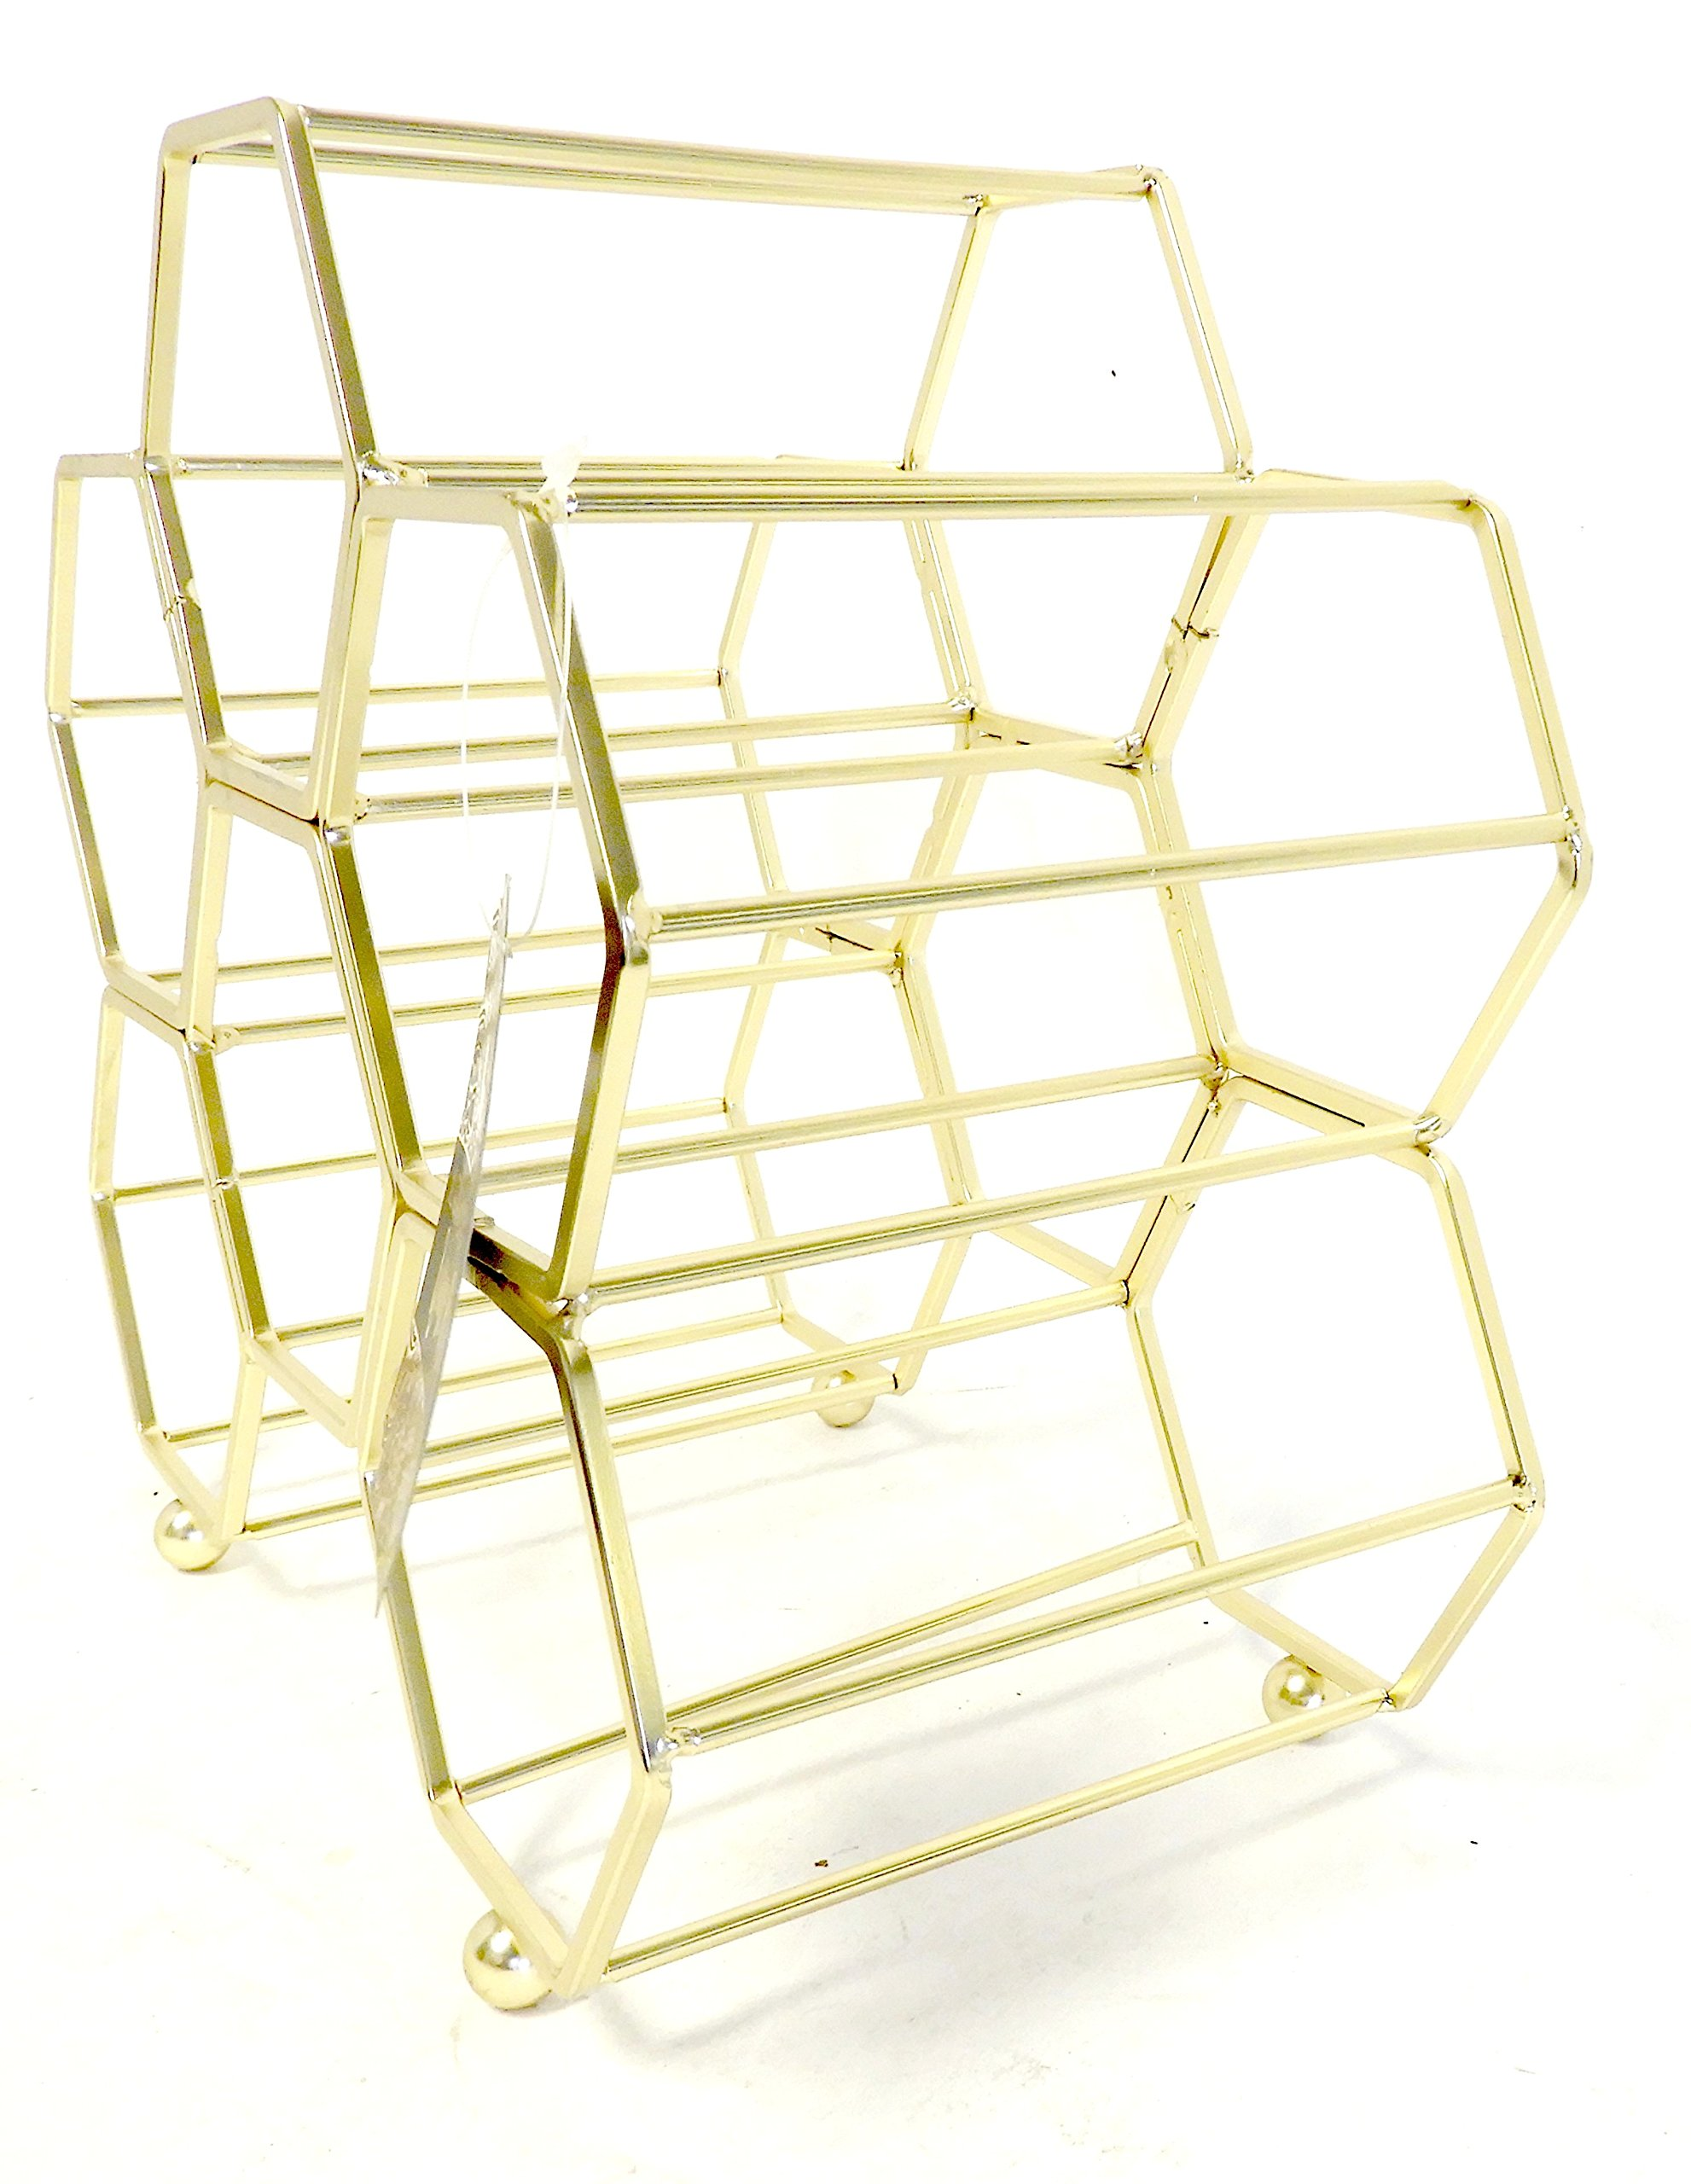 DINY Home & Style Hexagonal Free Standing Wine Rack (Gold)